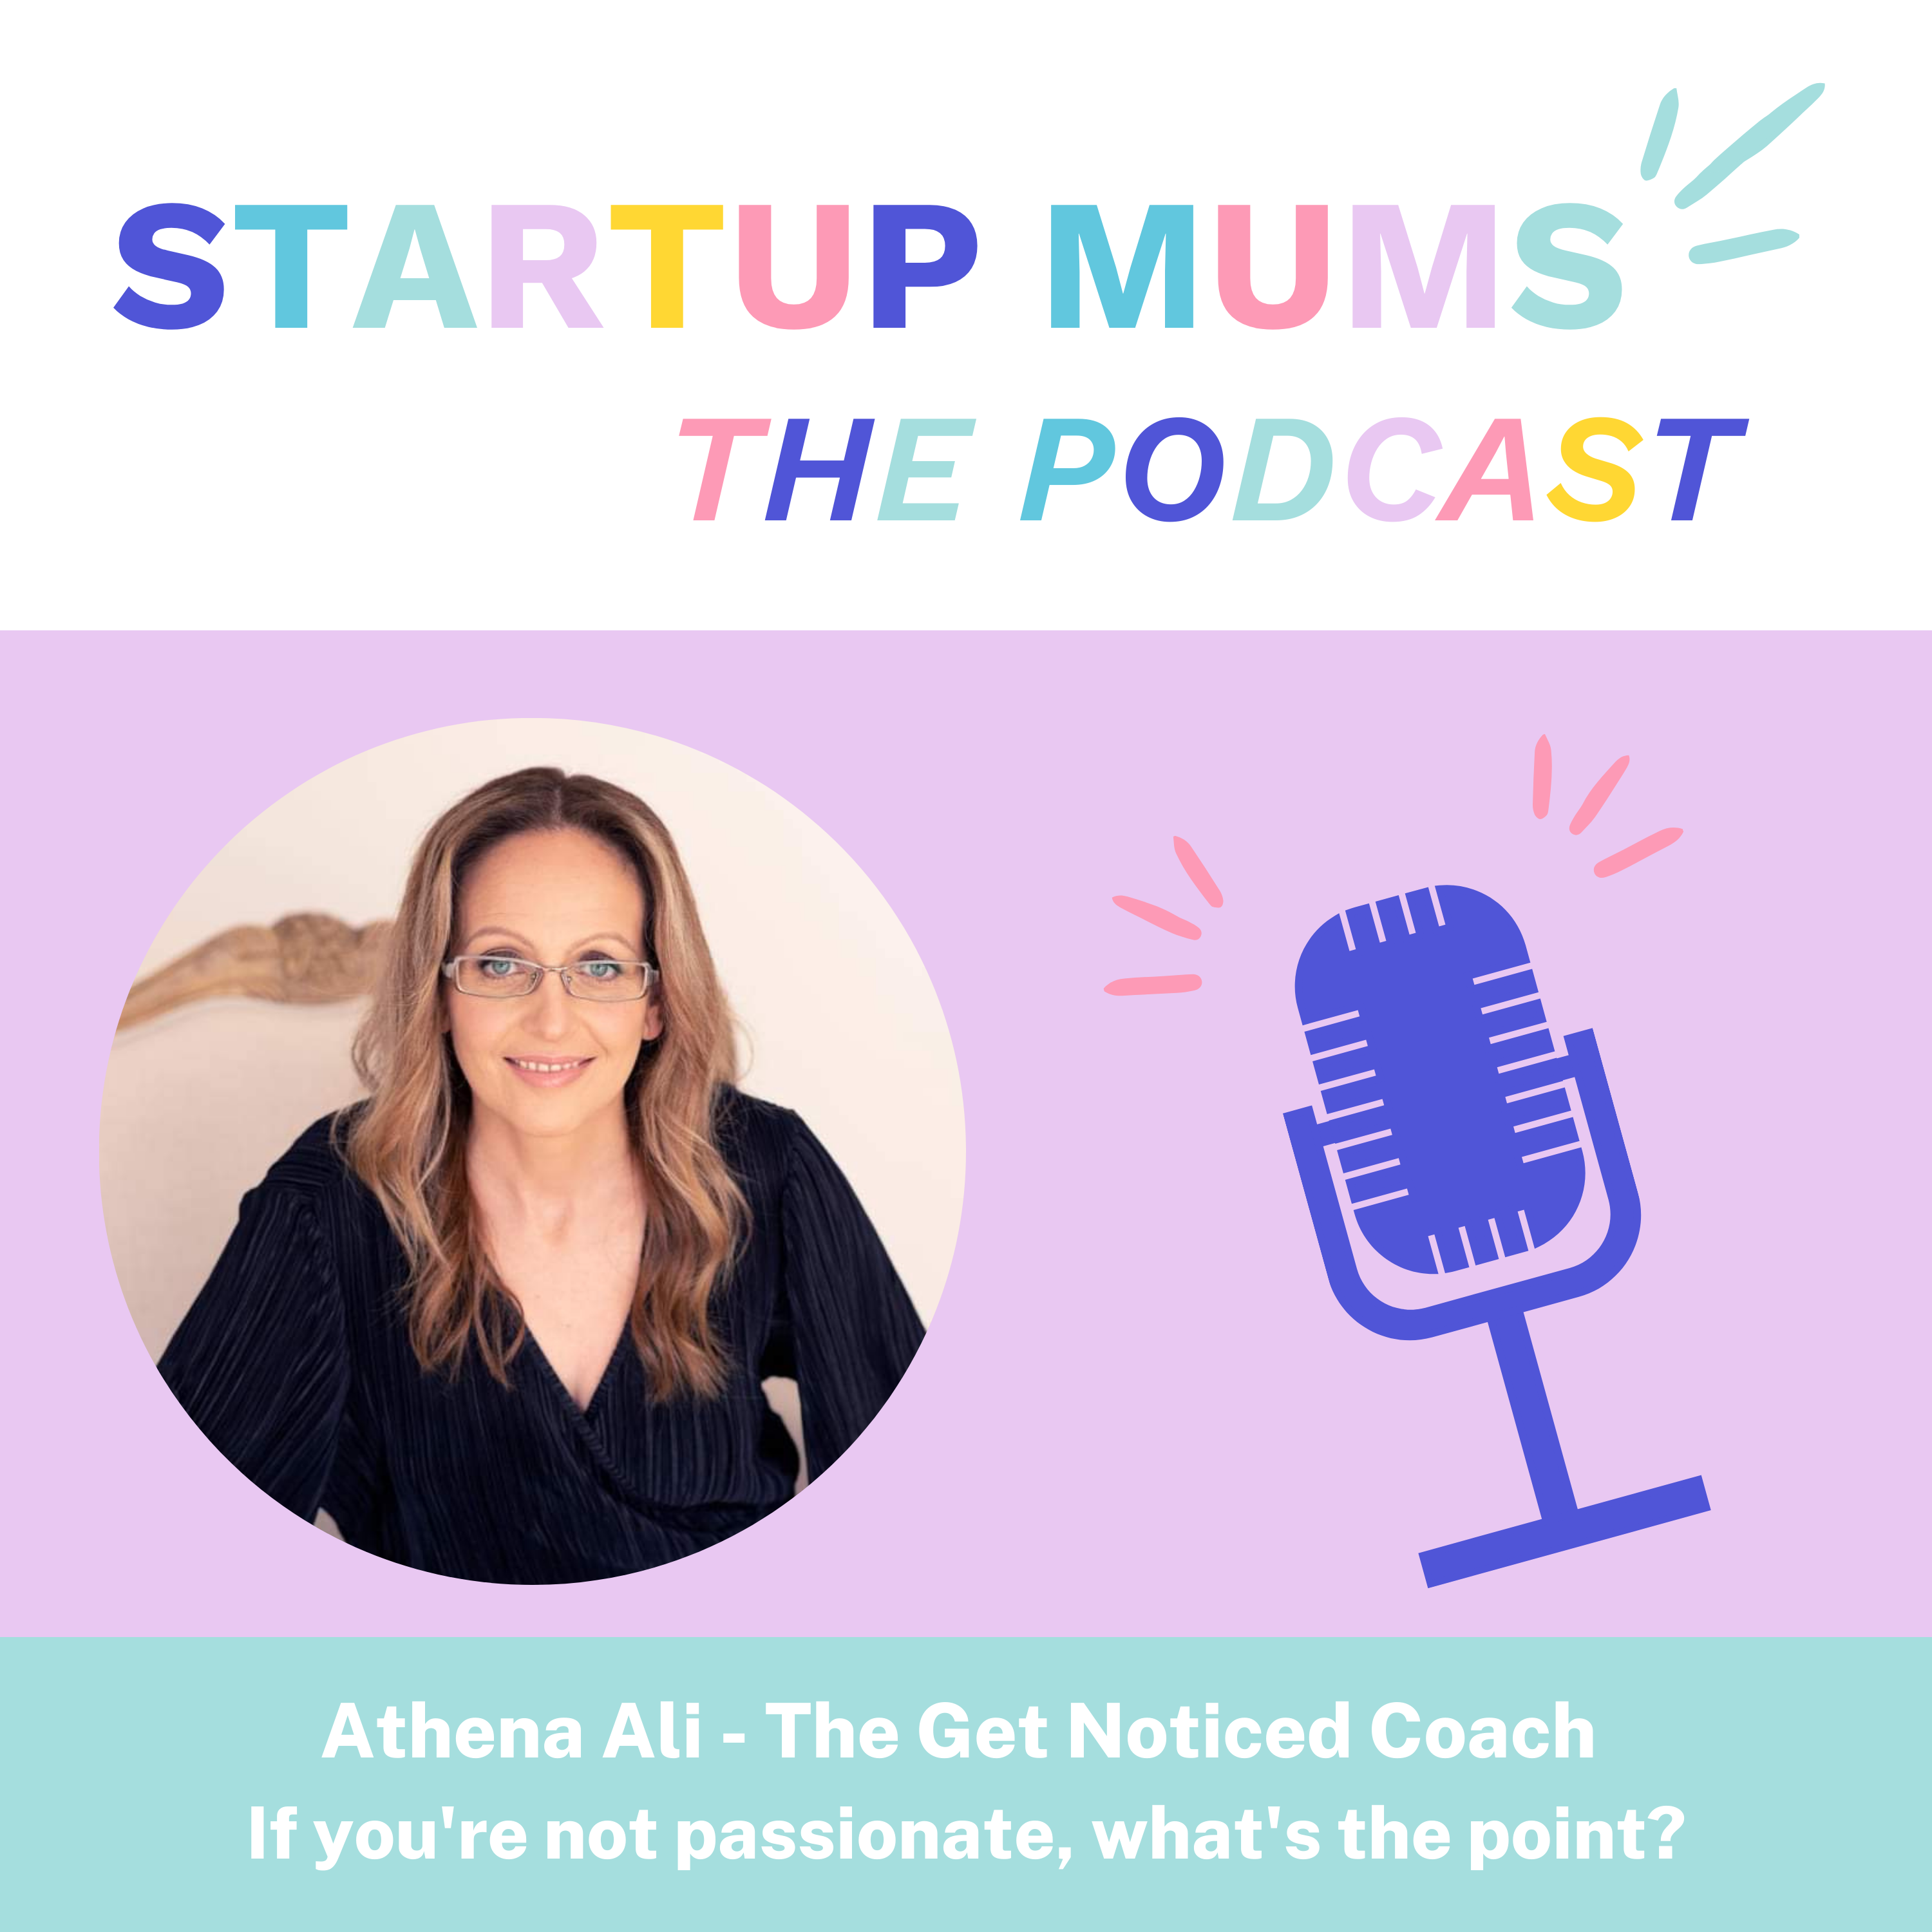 Athena Ali - The Get Noticed Coach on Start Up Mums the Podcast - If you're not passionate, what's the point?